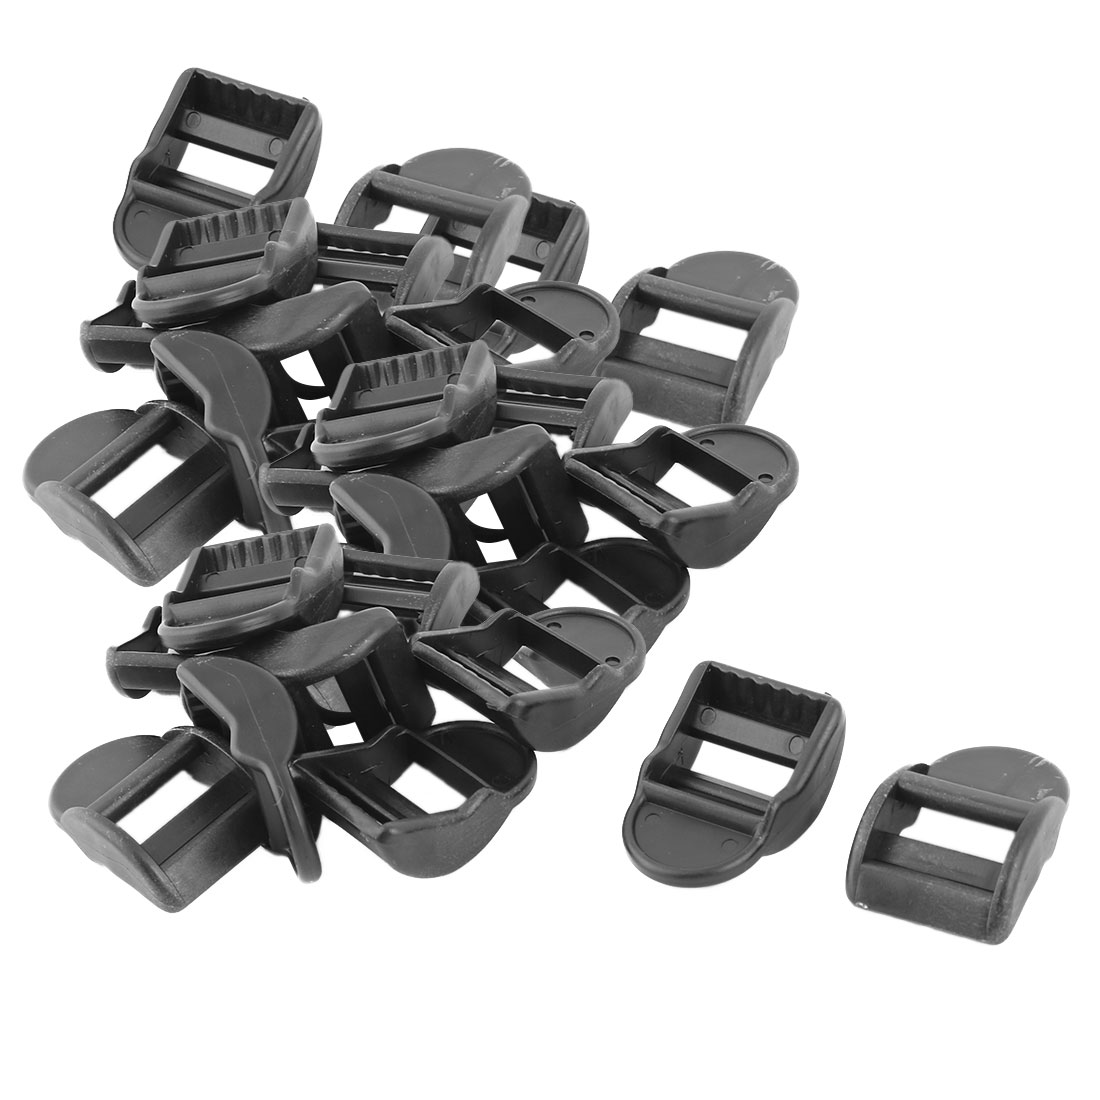 Backpack Bag Plastic Adjustable Strap Ladder Tension Lock Slider Buckles Black 30pcs